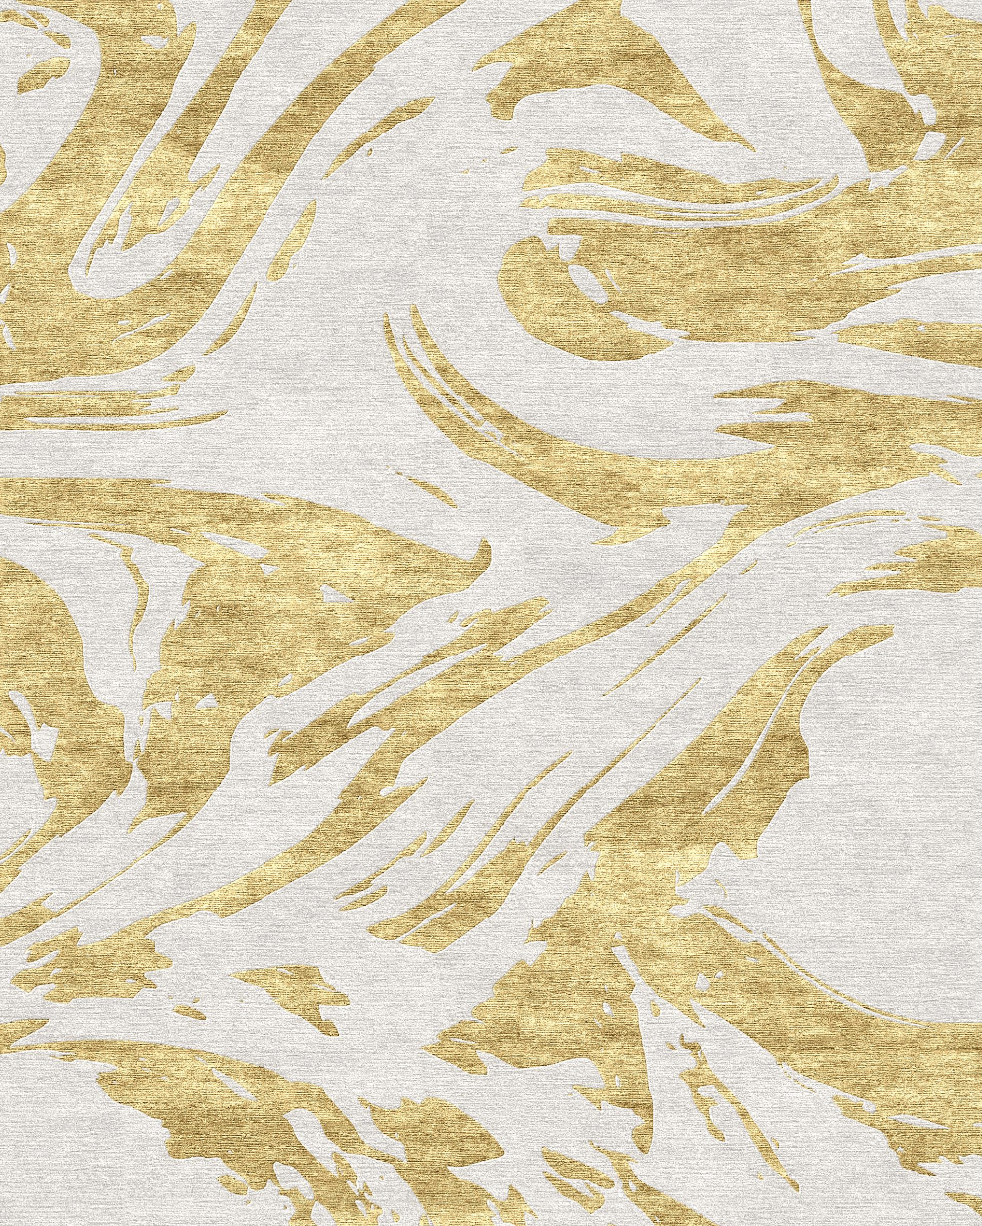 Marbled- Gold